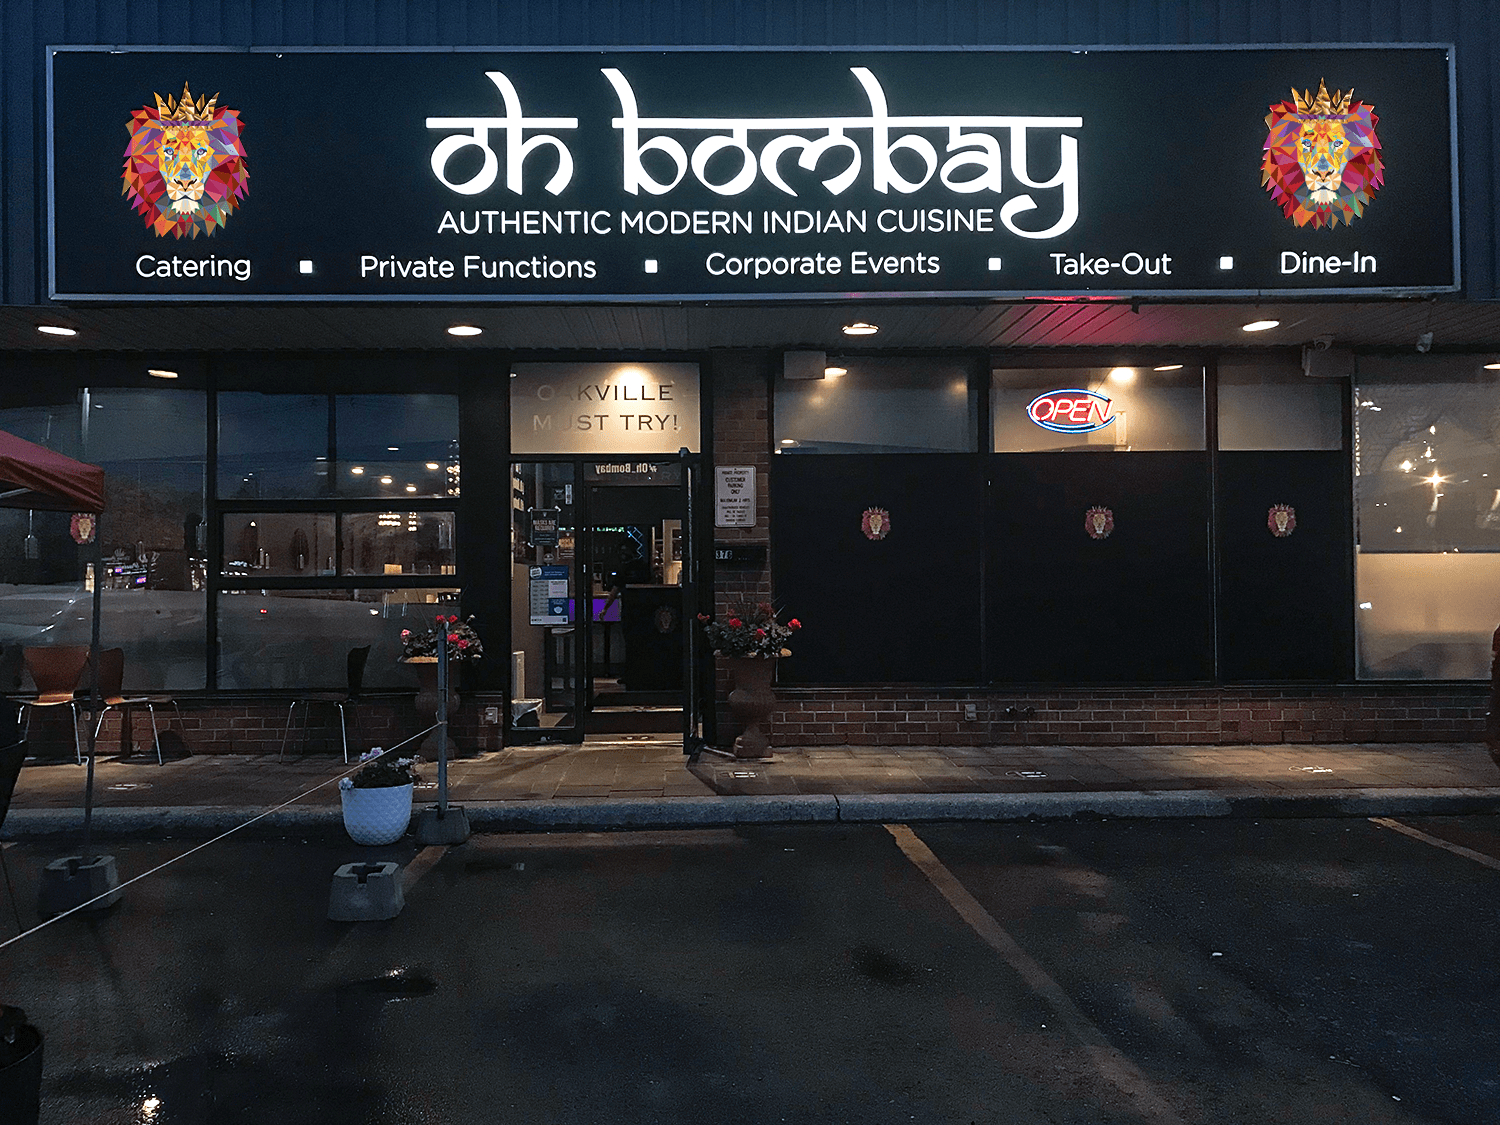 Exterior View - Oh Bombay